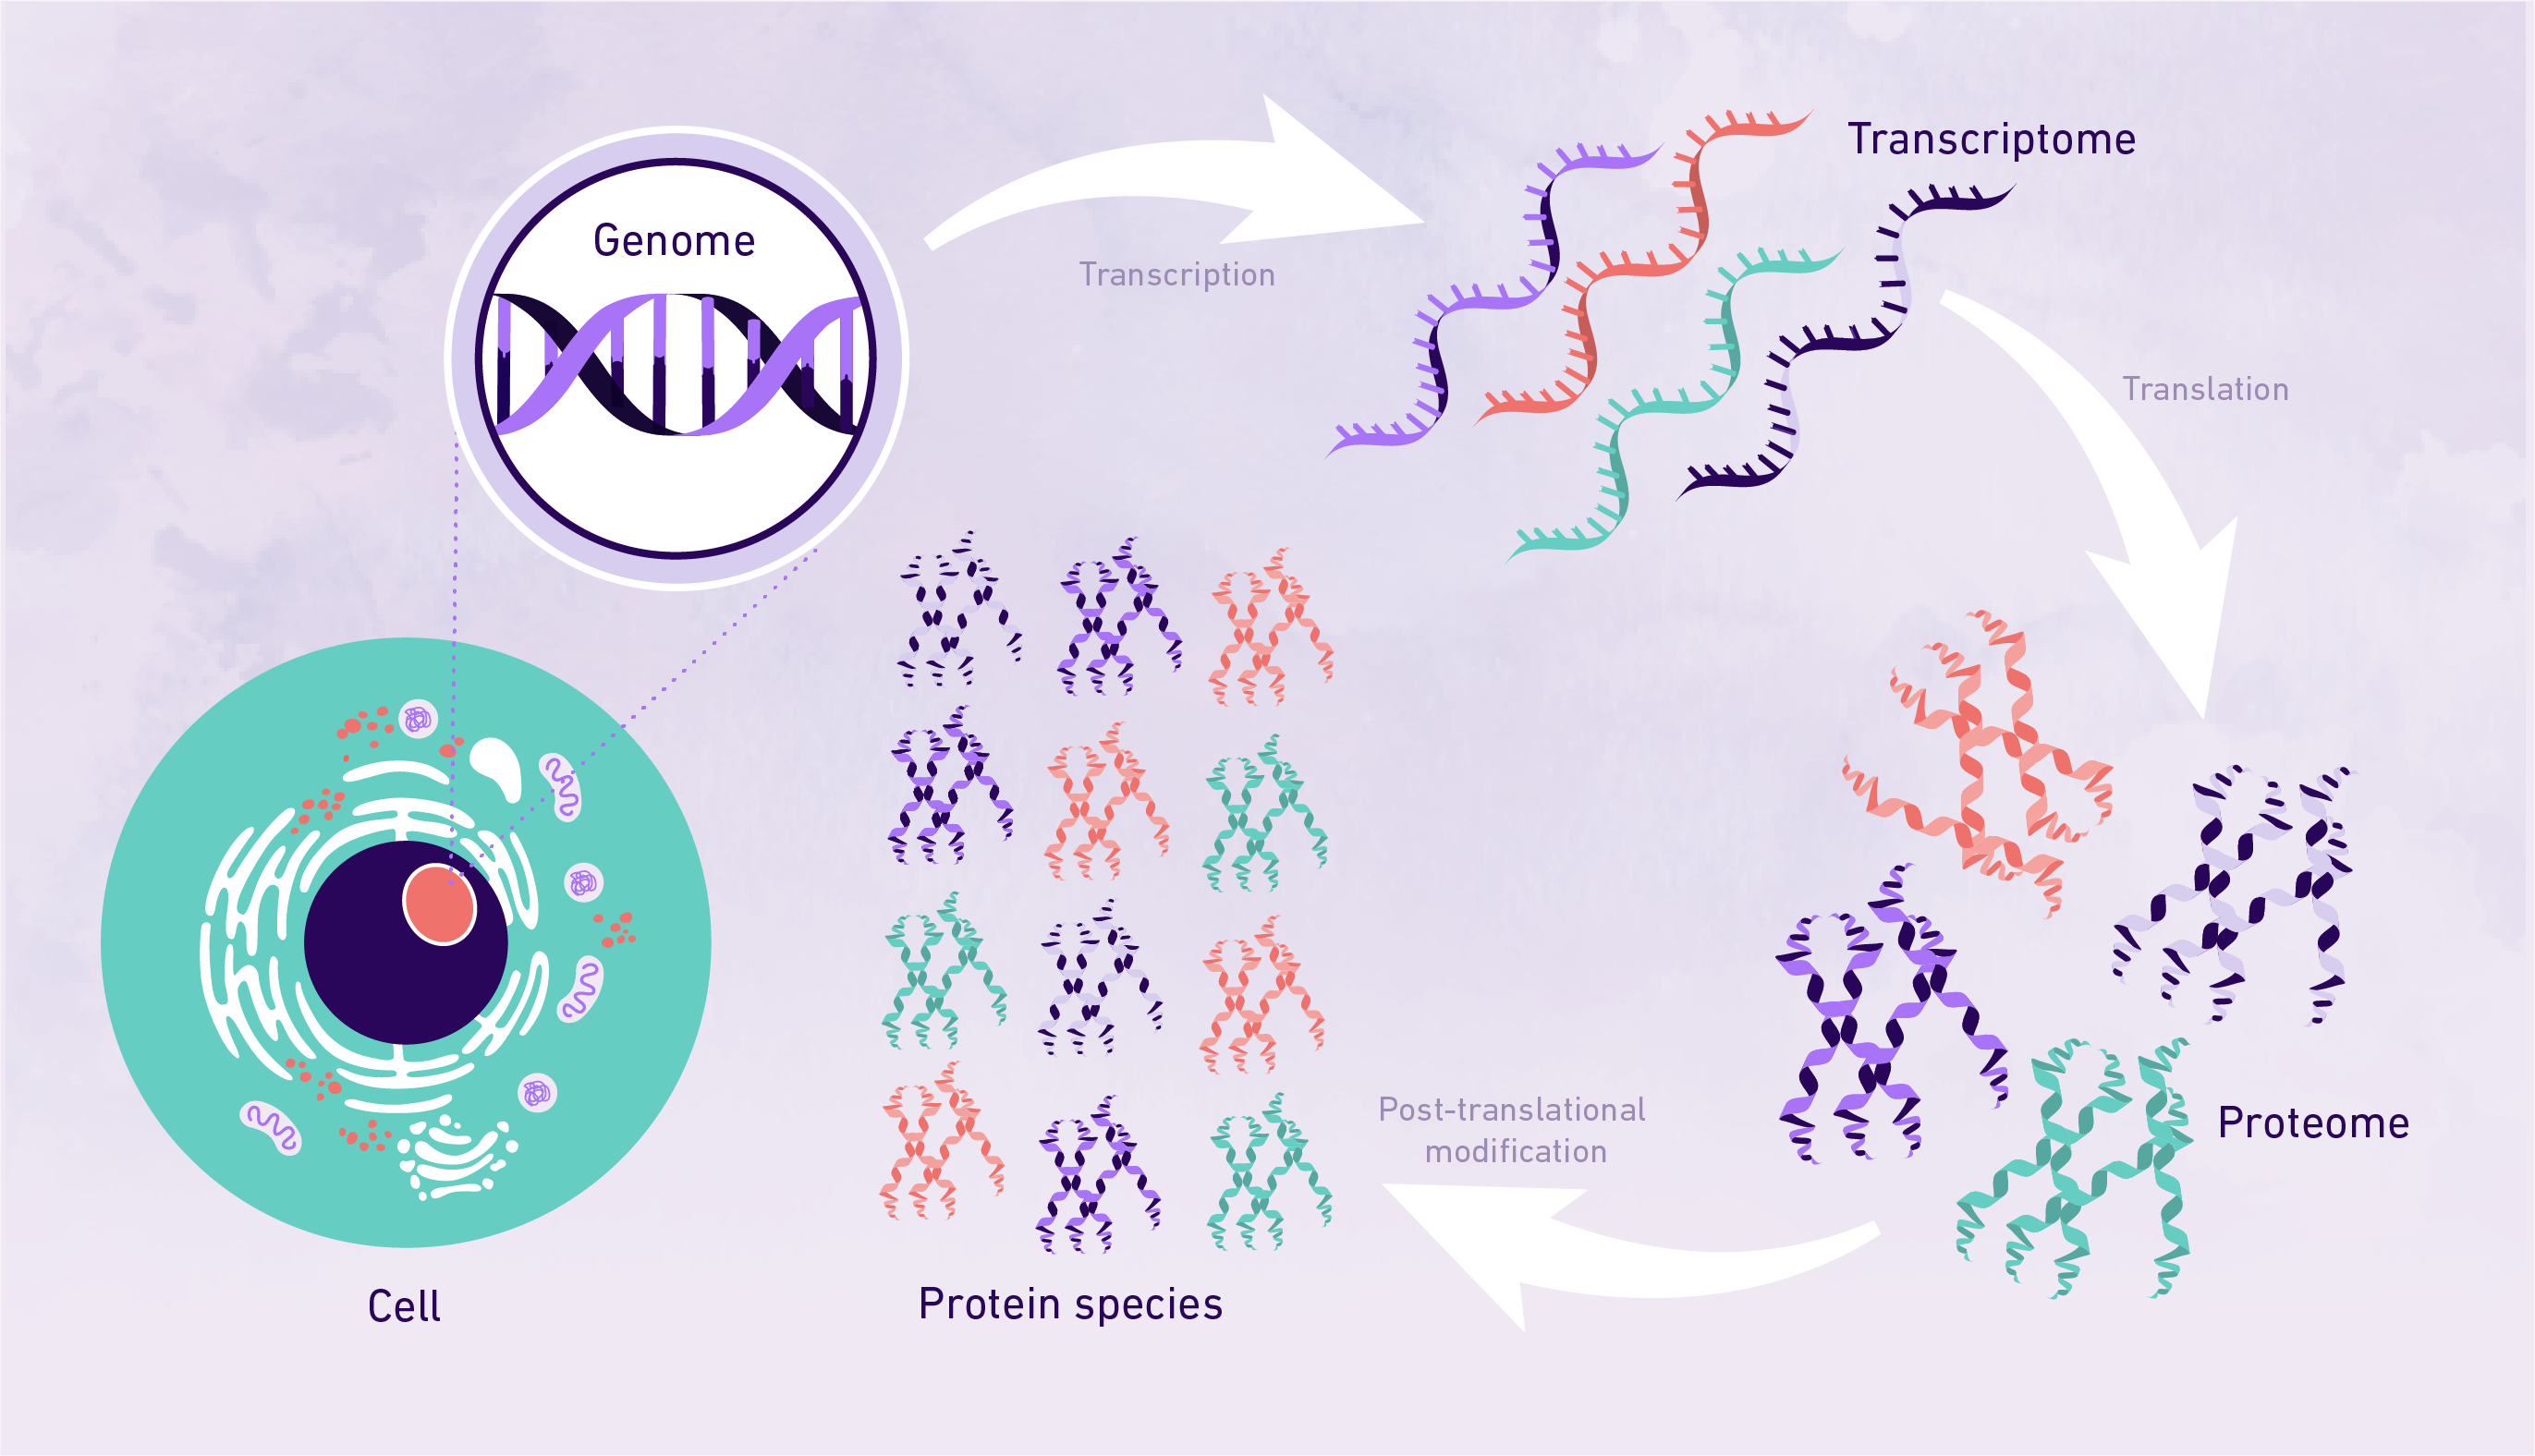 An image showing DNA being converted to proteins and the different stages involved, including post-translational modifications.